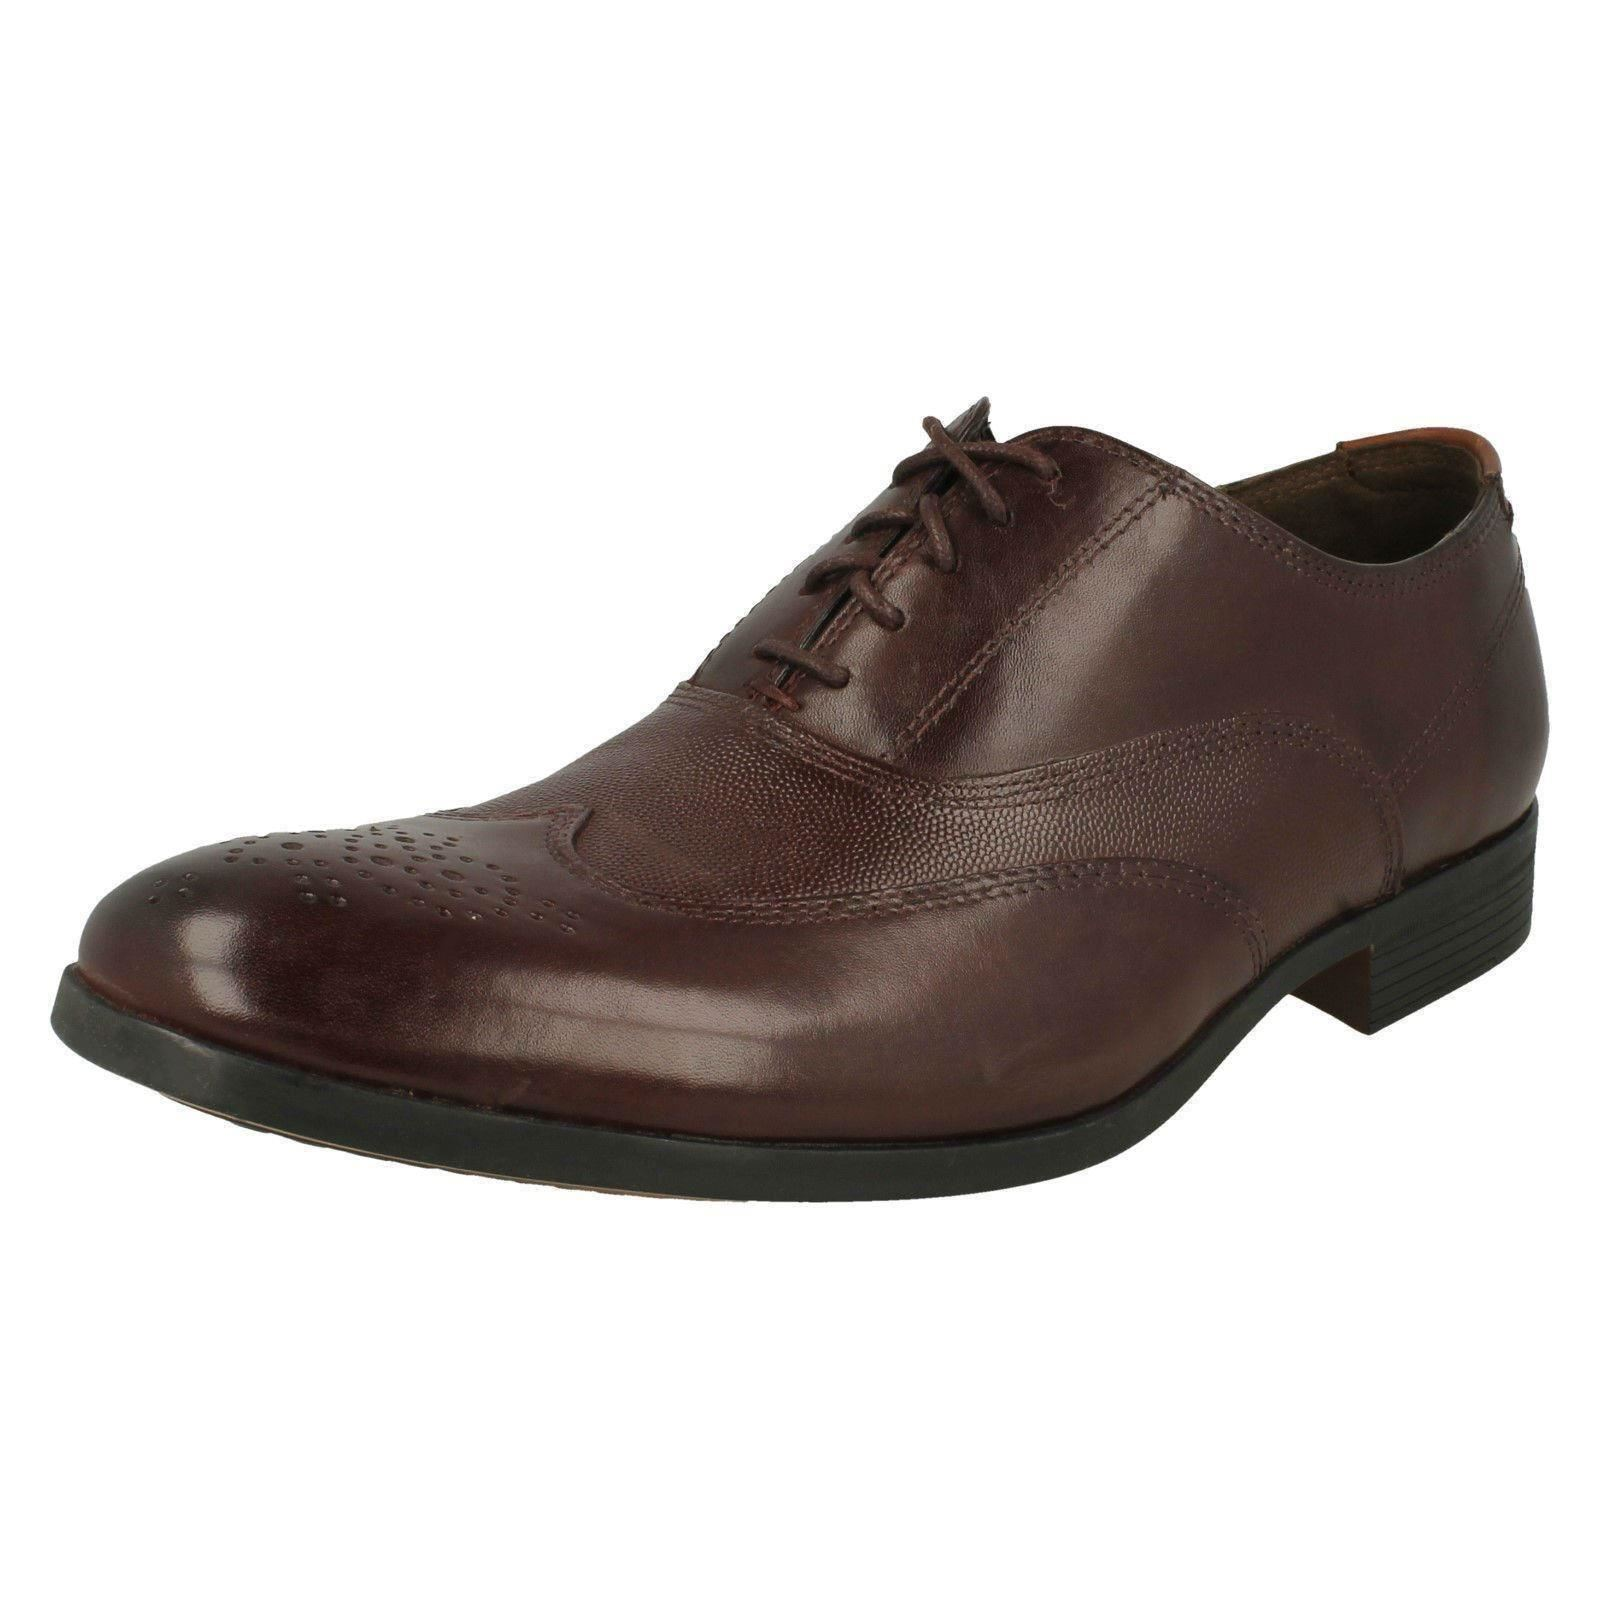 Herren Clarks Leder Smart Lace Up Formal Schuhes Label - Gilmore Wing 1cd540